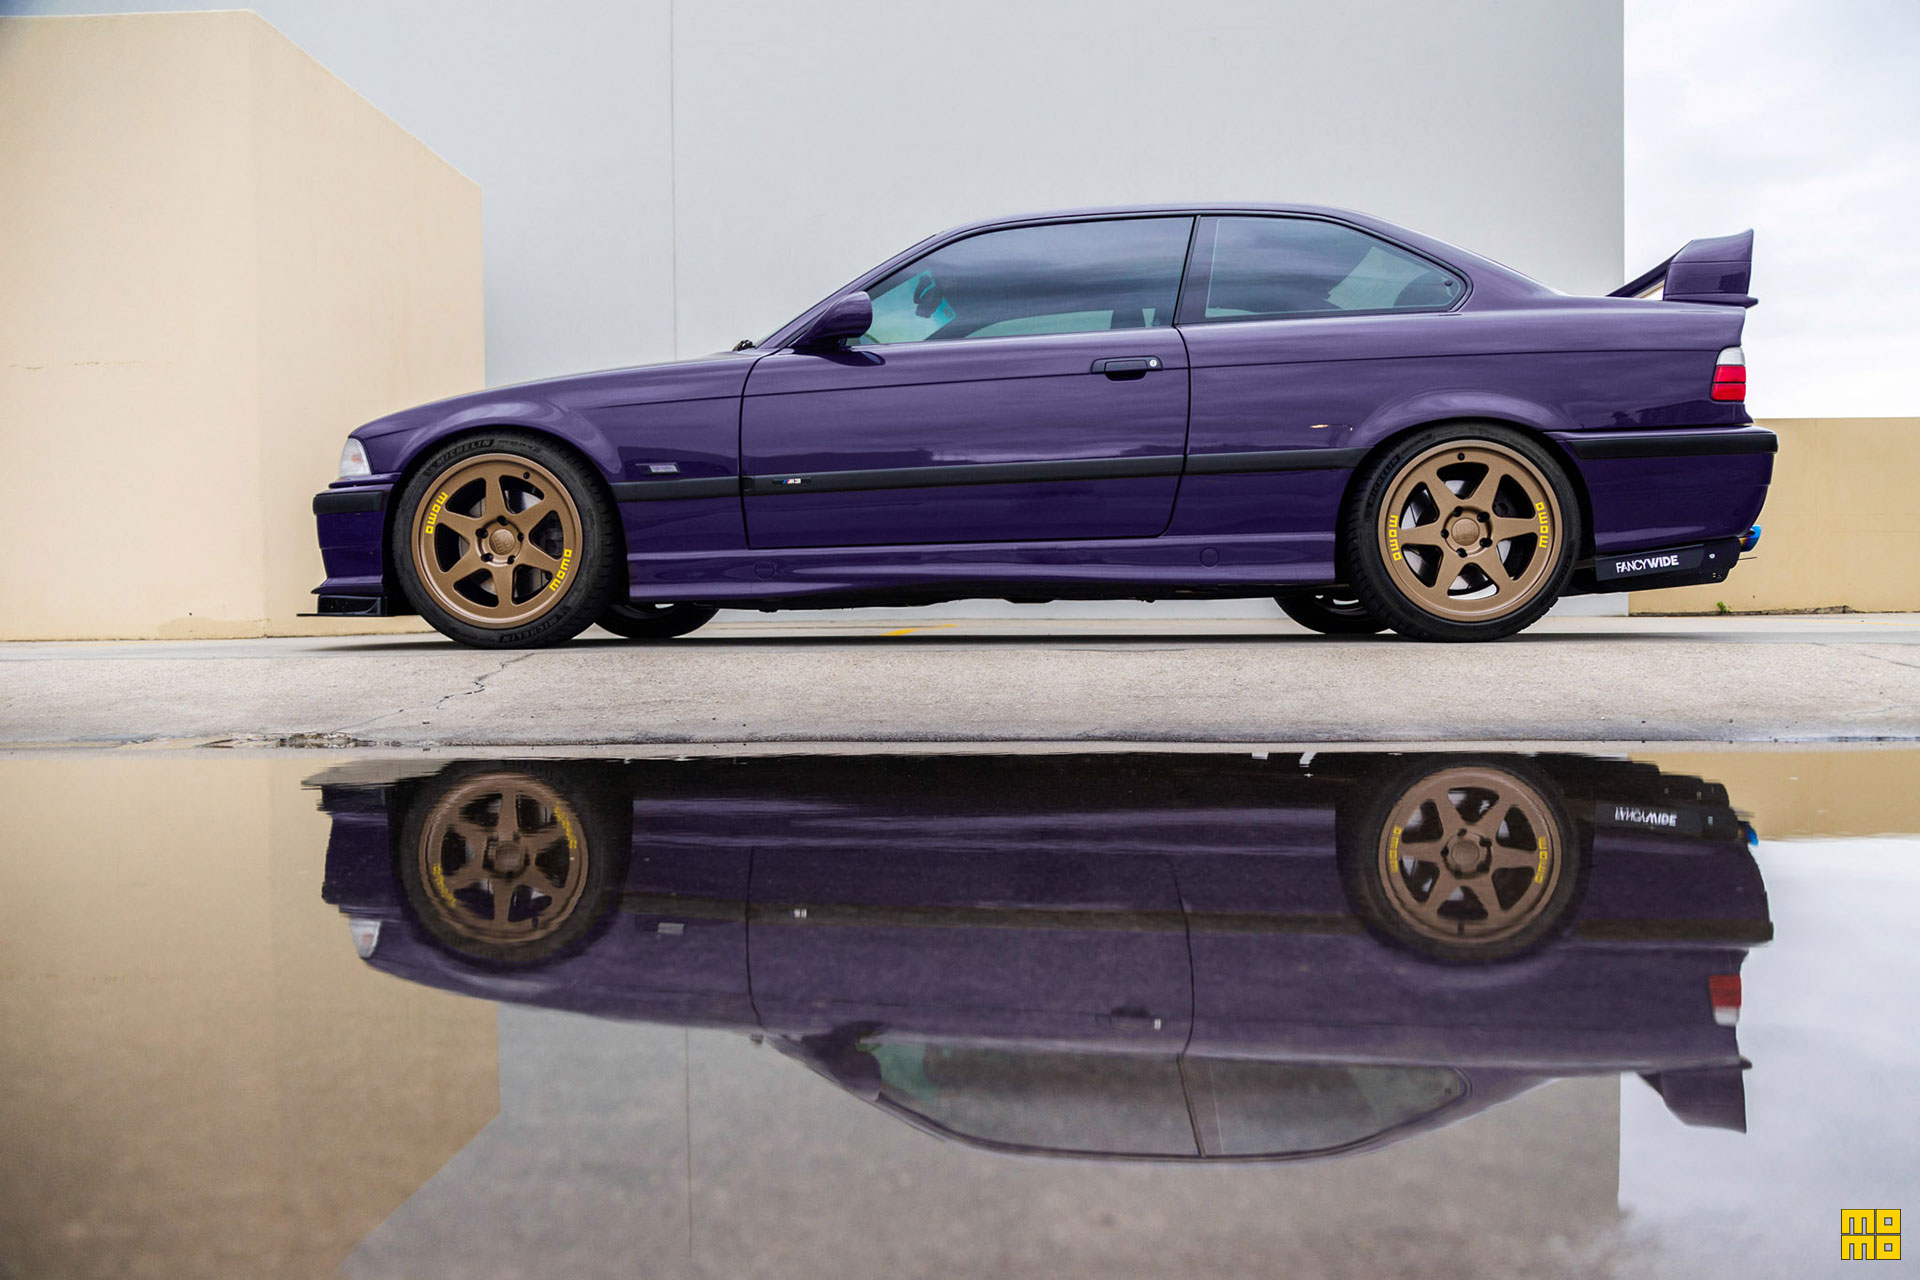 Purple BMW e36 M3 - MOMO Heritage 6 Wheels in Gloss Bronze